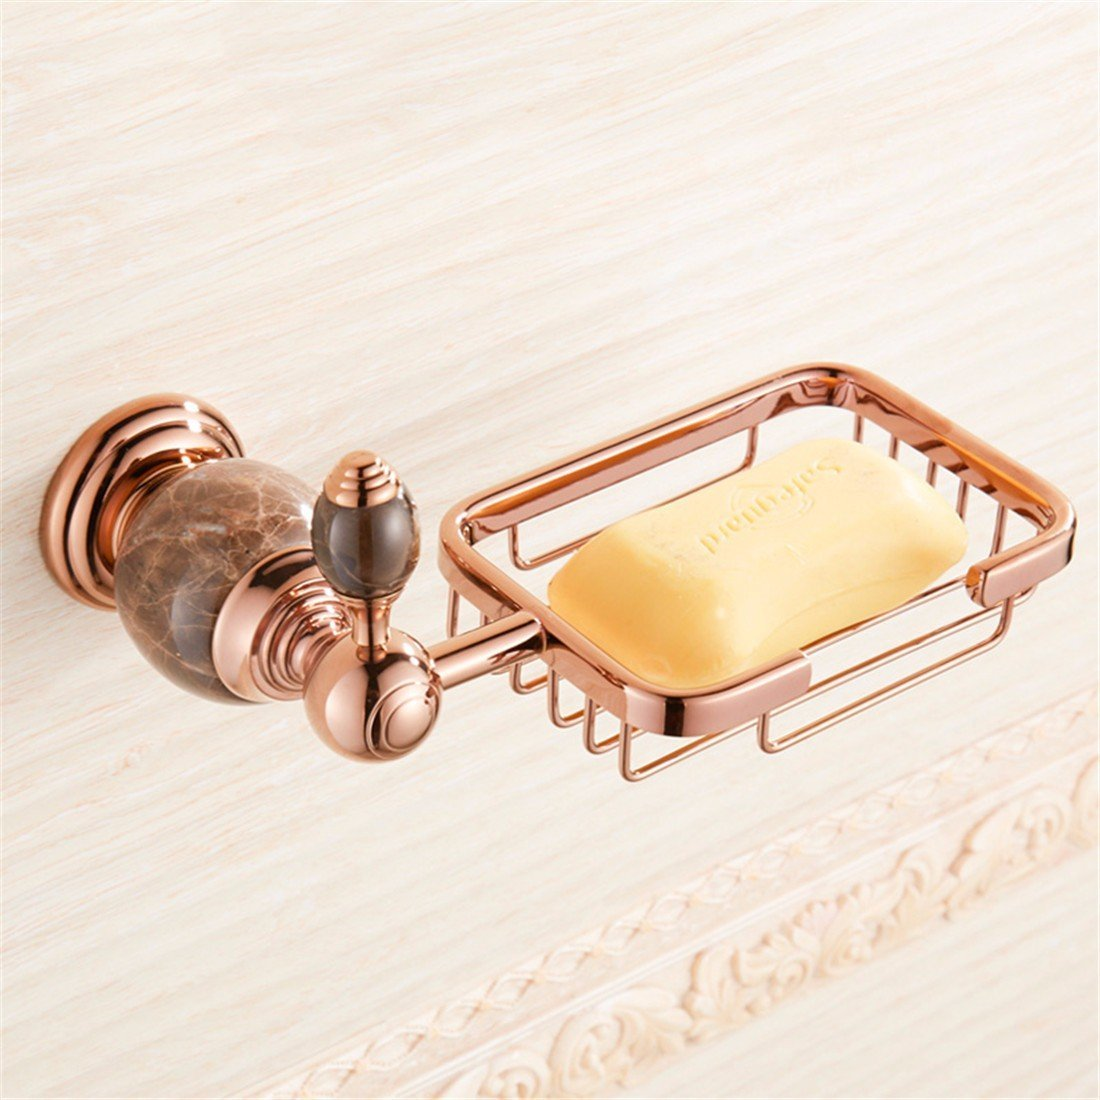 LAONA Continental antique rose gold black jade bathroom accessory kit towel bars toilet paper, Soap Basket